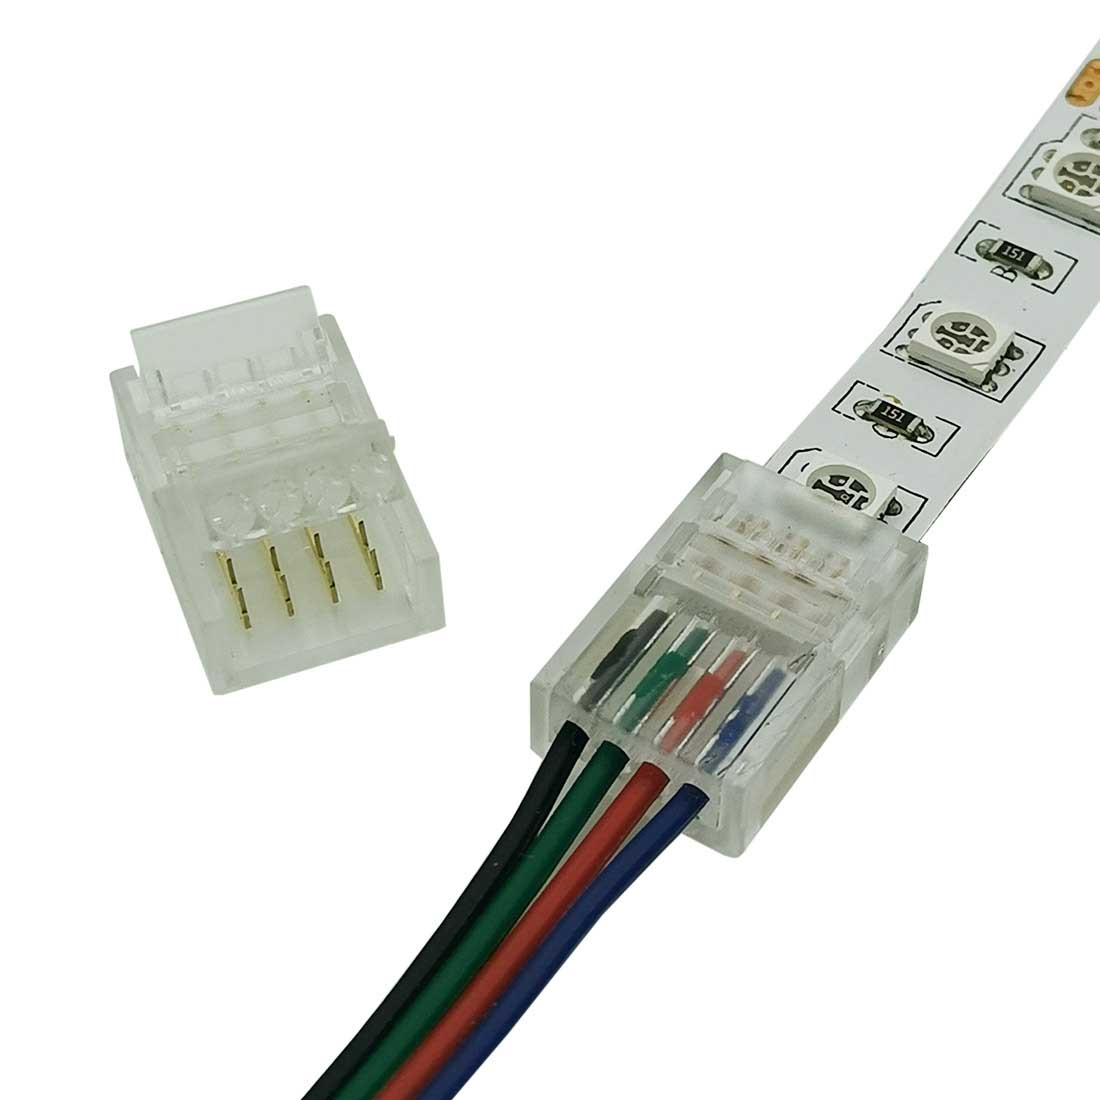 4-Pin RGB LED Strip Light Connectors 10mm Unwired Gapless Solderless Adapter Terminal Extension Tape to Tape Connection for SMD 5050 Multicolor LED Strip Lights 12V 24V Non-Waterproof alightings.com